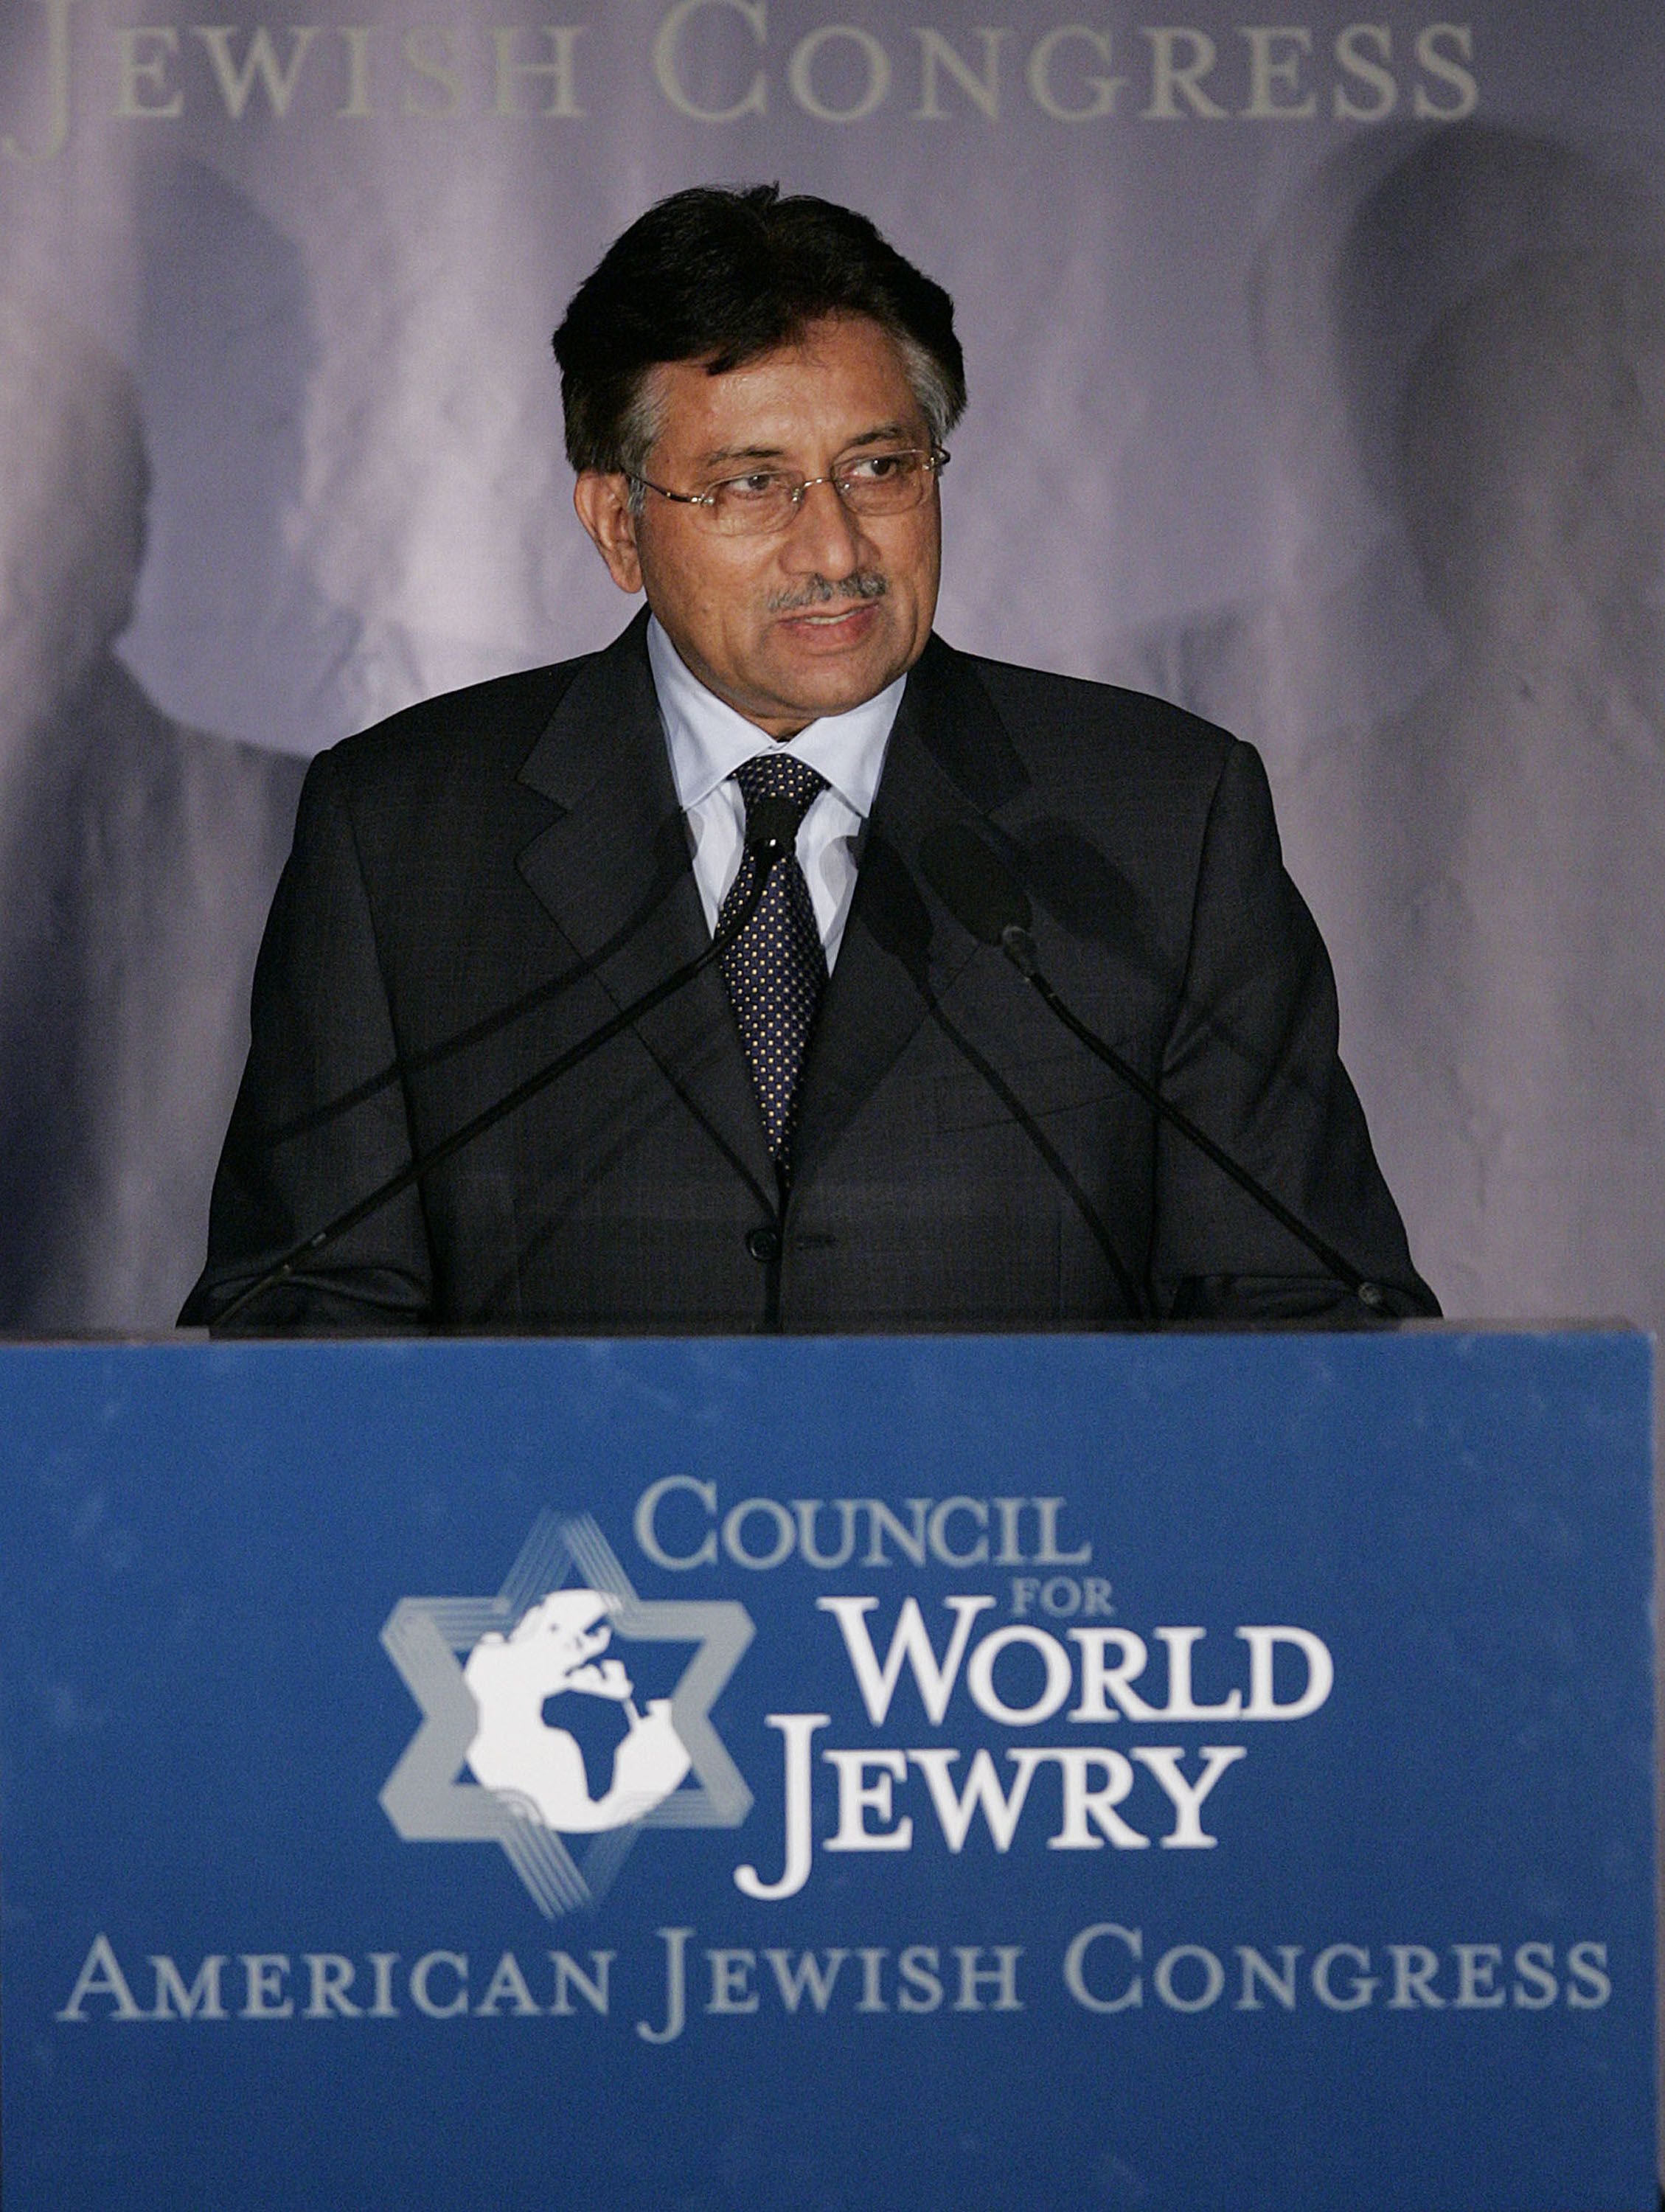 CLOSER THAN EVER: Former Pakistani president Pervez Musharraf addresses the Council for World Jewry in 2005, when Pakistani-Jewish relations were at their most promising.